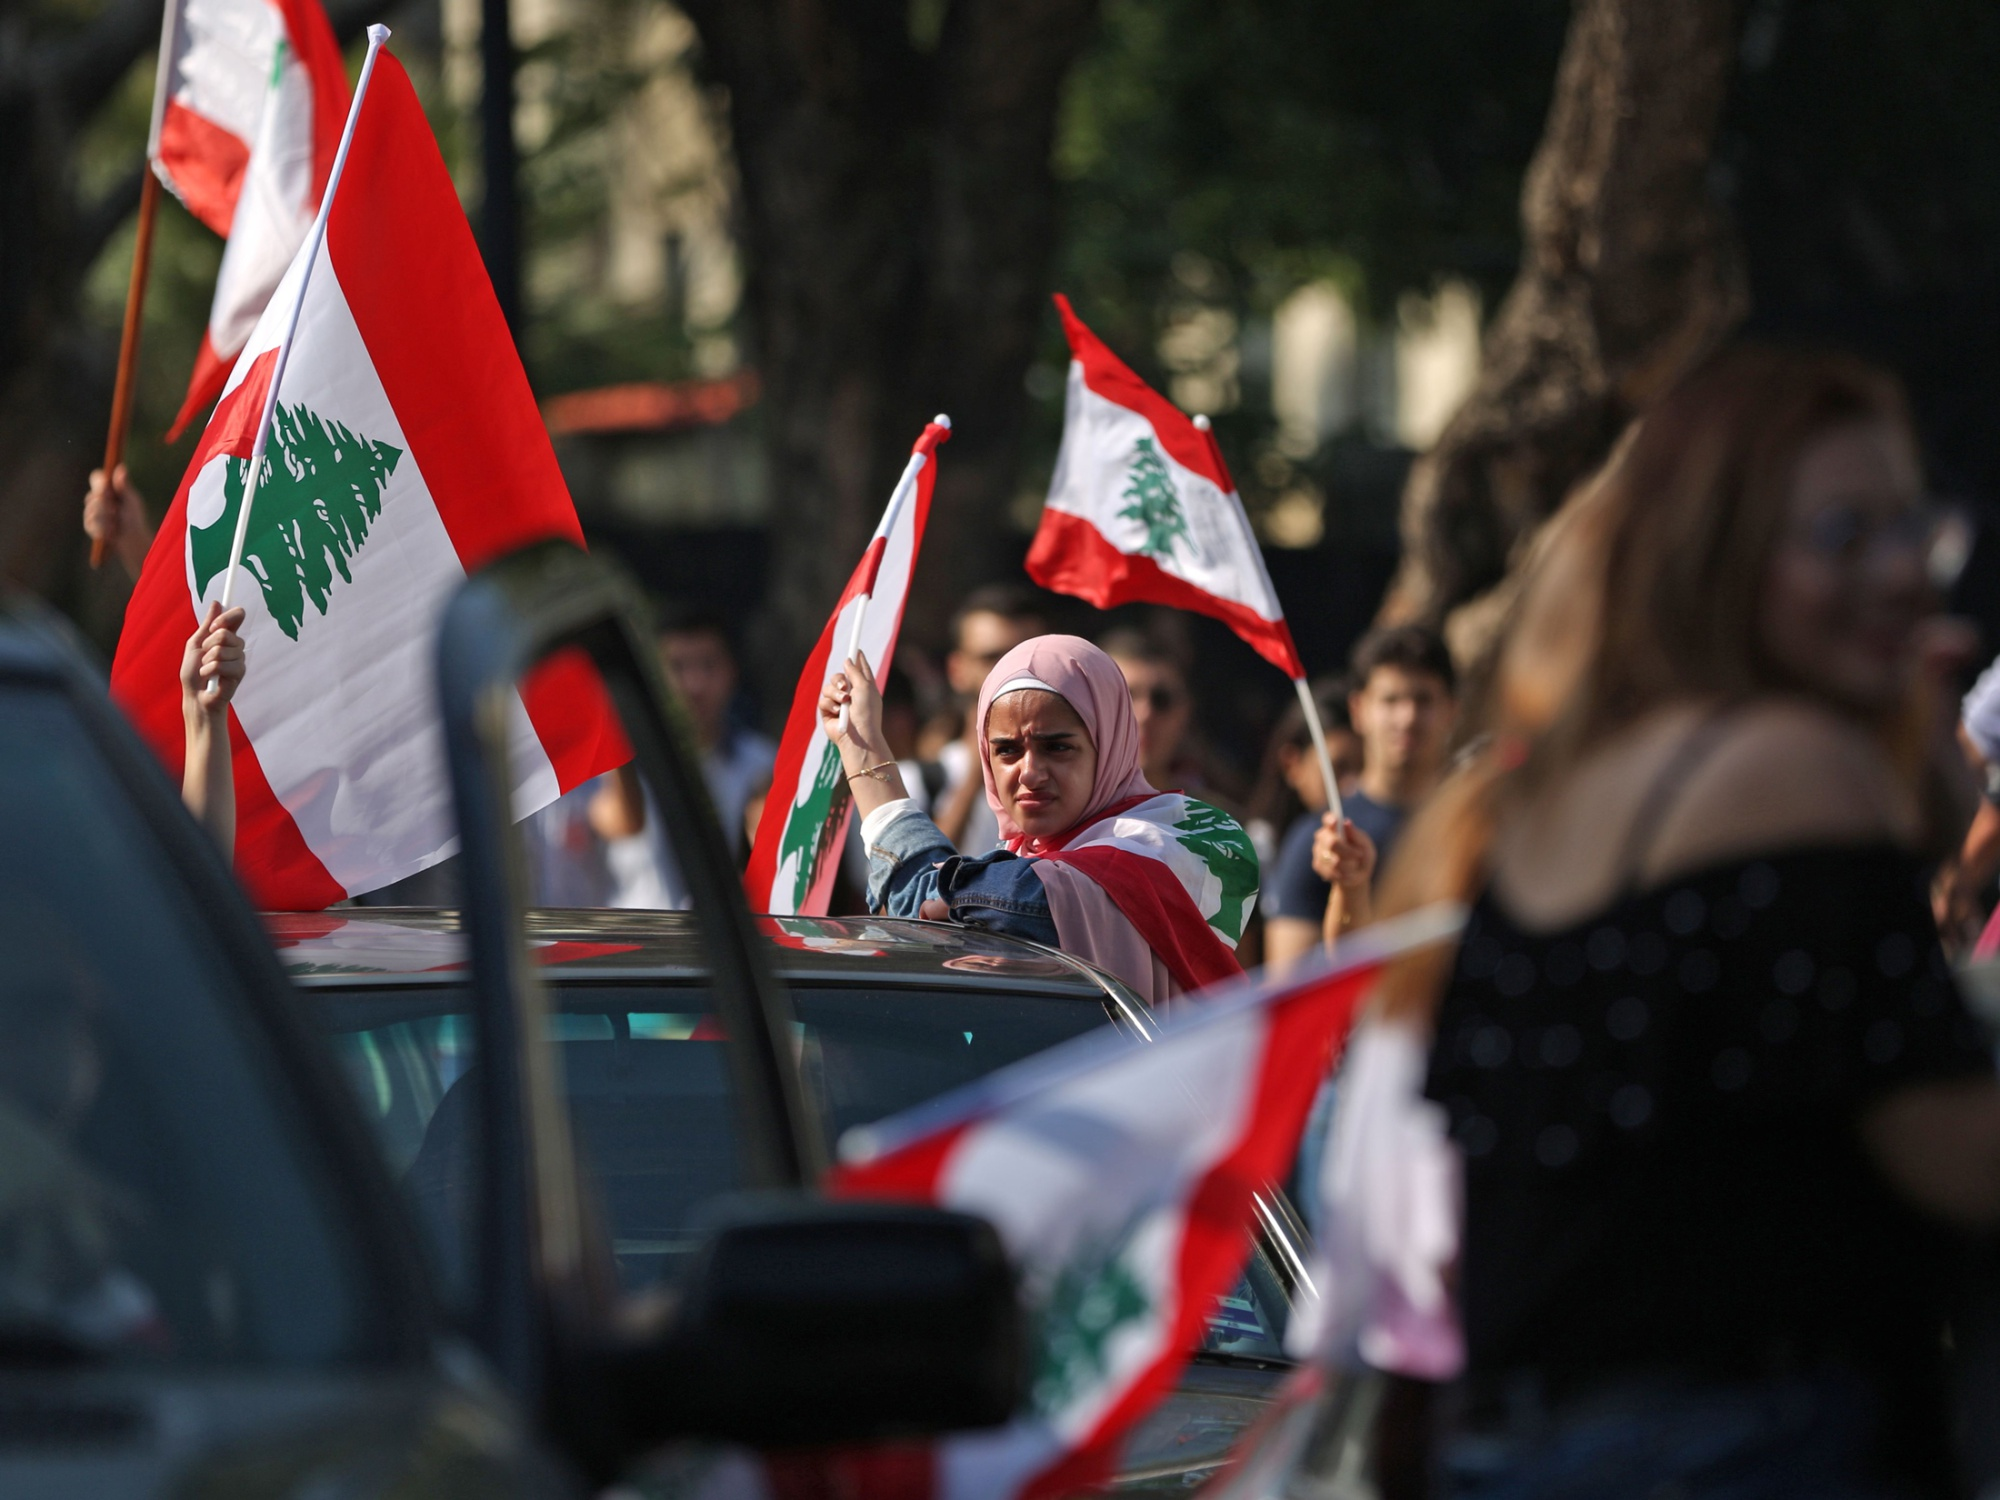 The Lebanese people have been protesting since October.